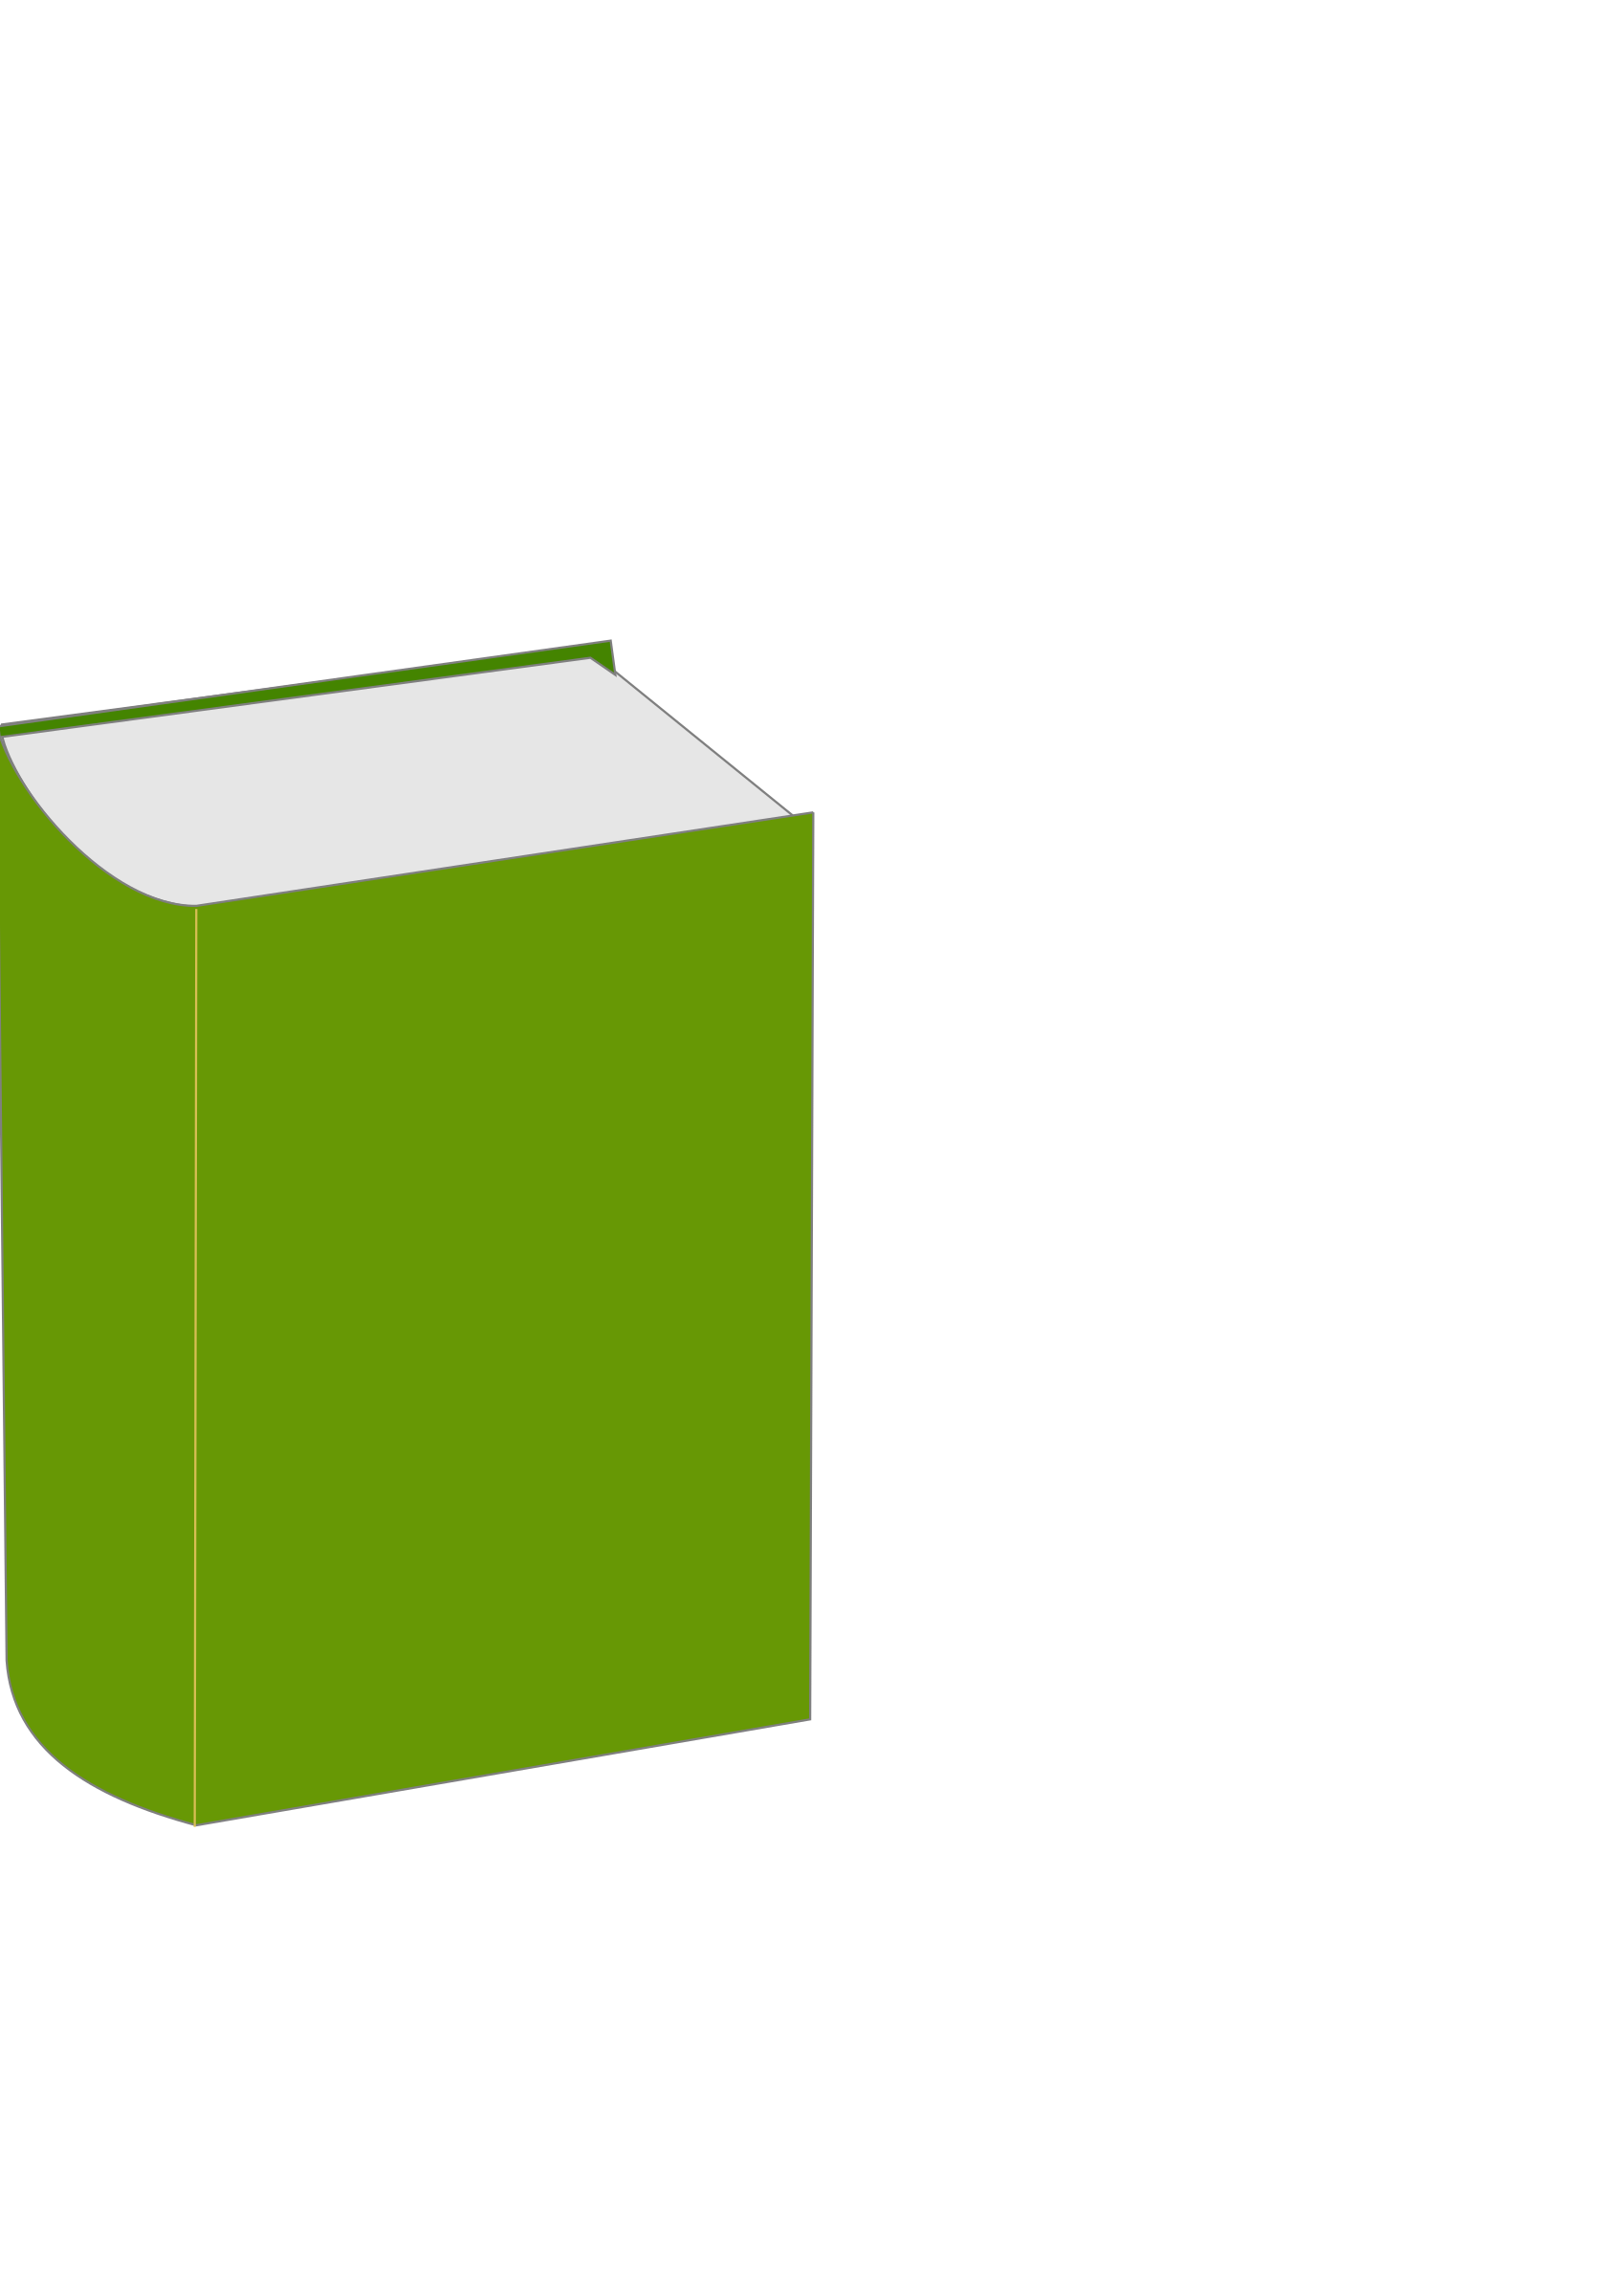 Green big image png. Square clipart book